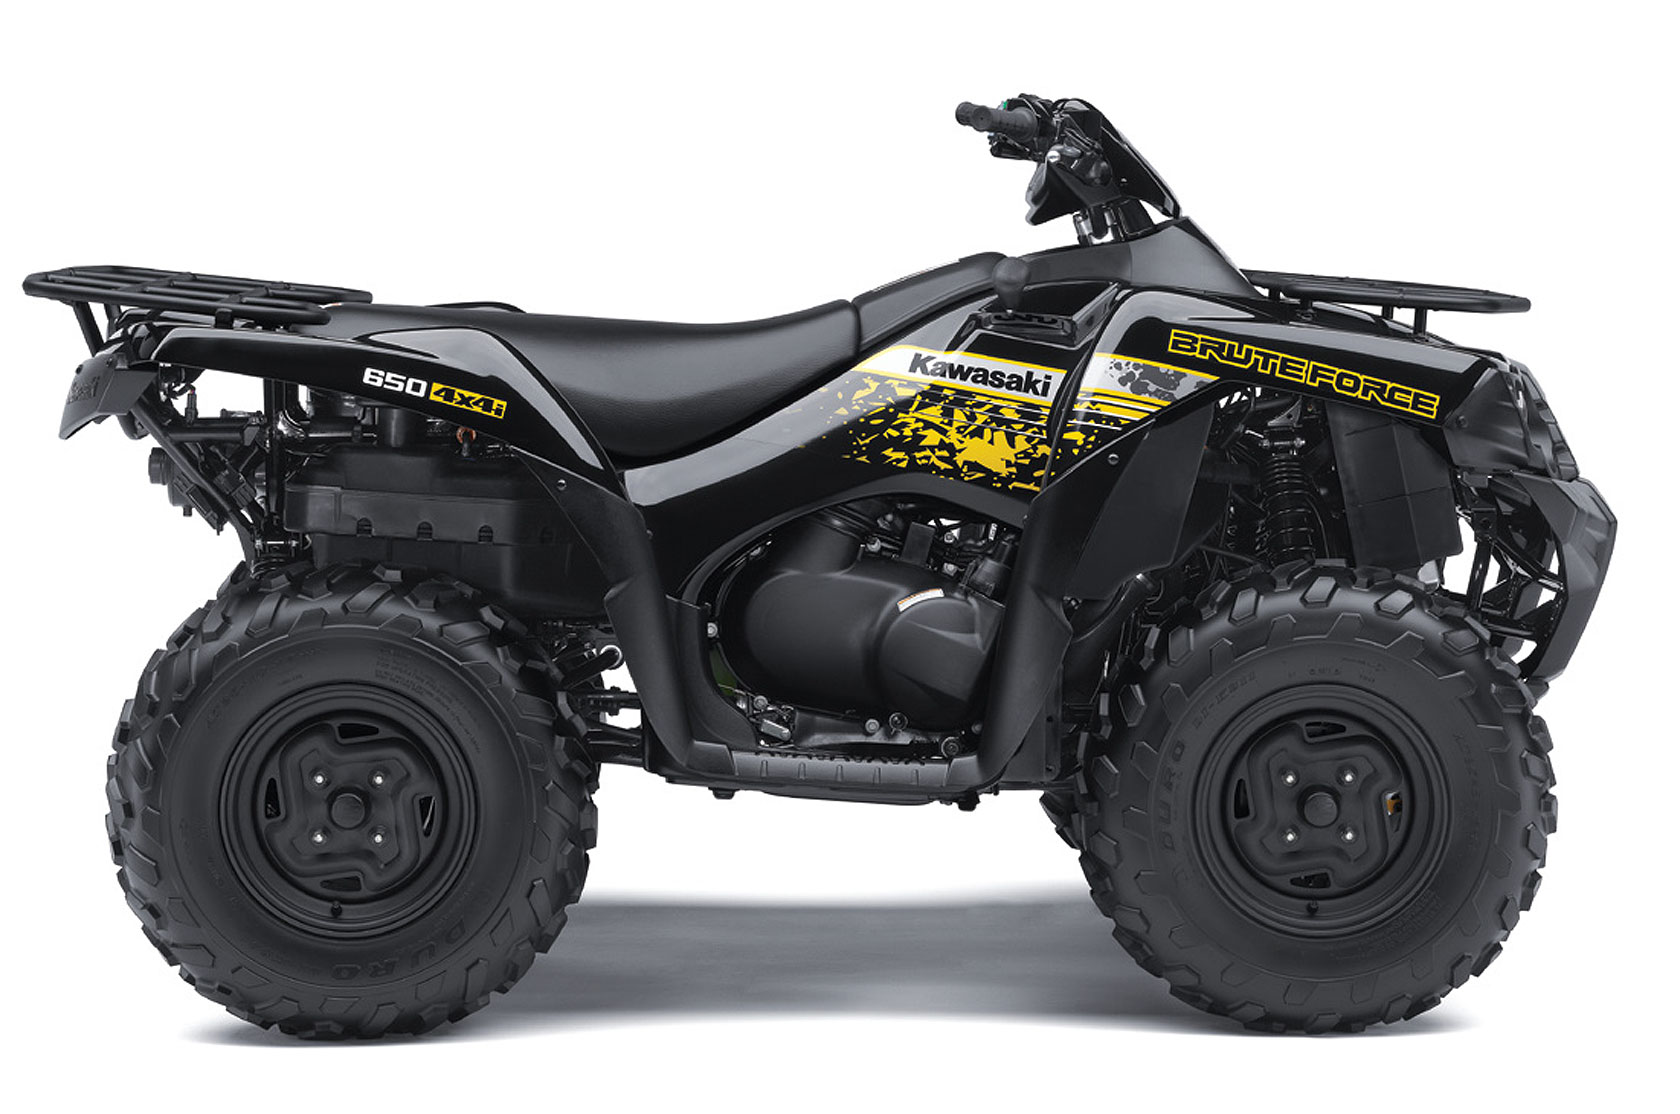 kawasaki brute force 650 4x4i specs 2012 2013 autoevolution. Black Bedroom Furniture Sets. Home Design Ideas